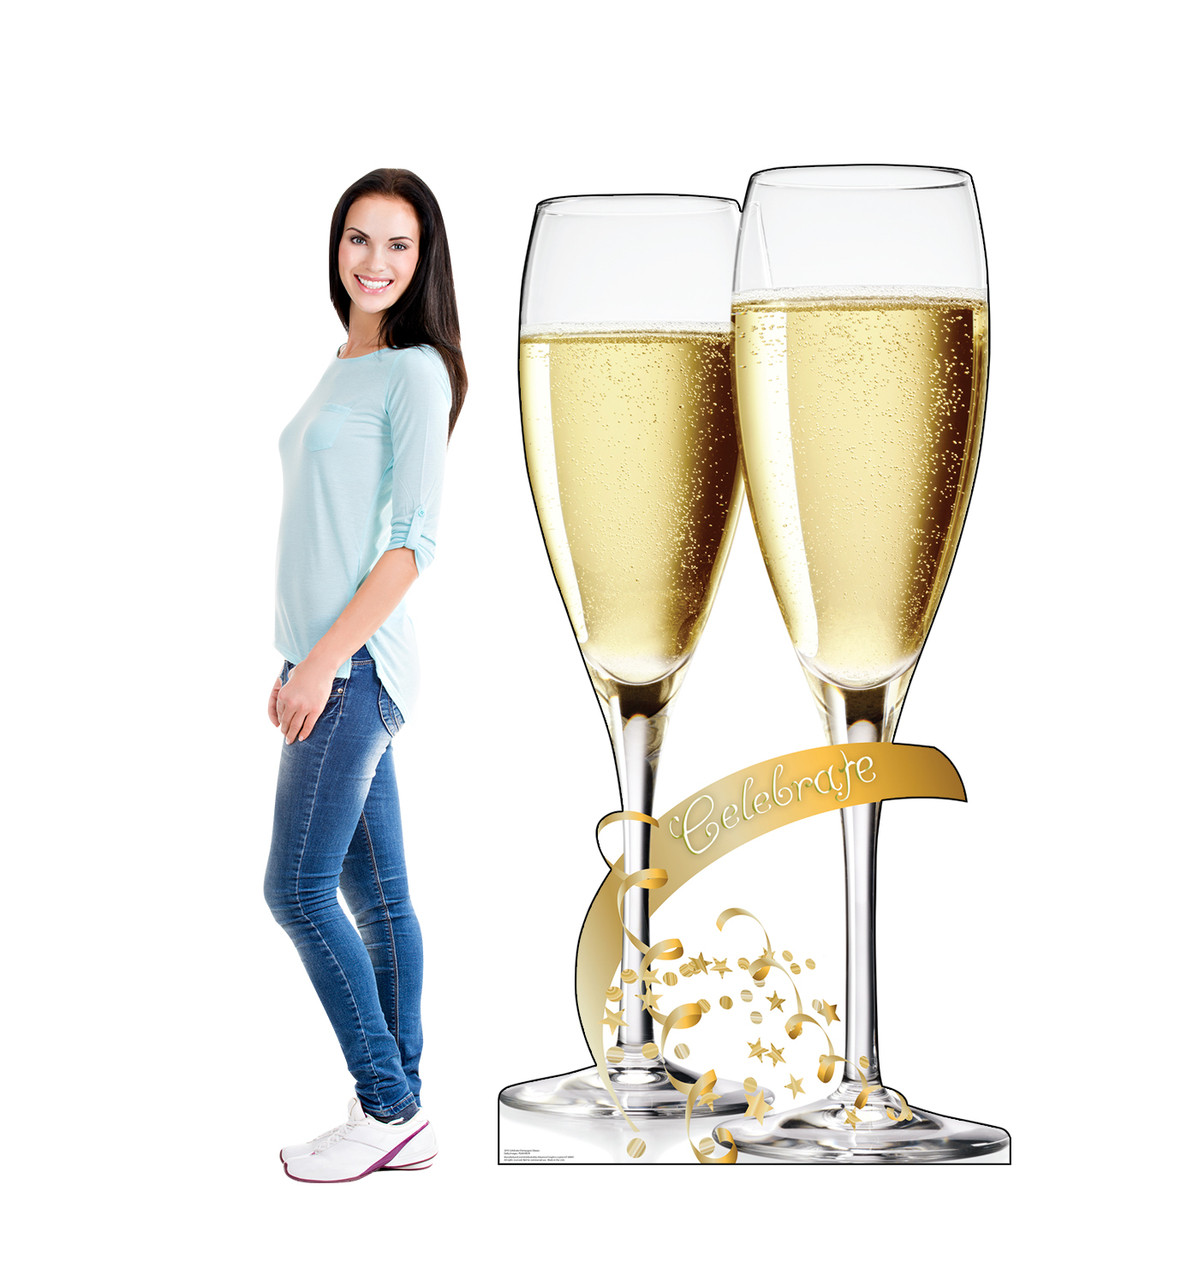 Life-size cardboard standee of Celebrate Champagne Glasses with model.